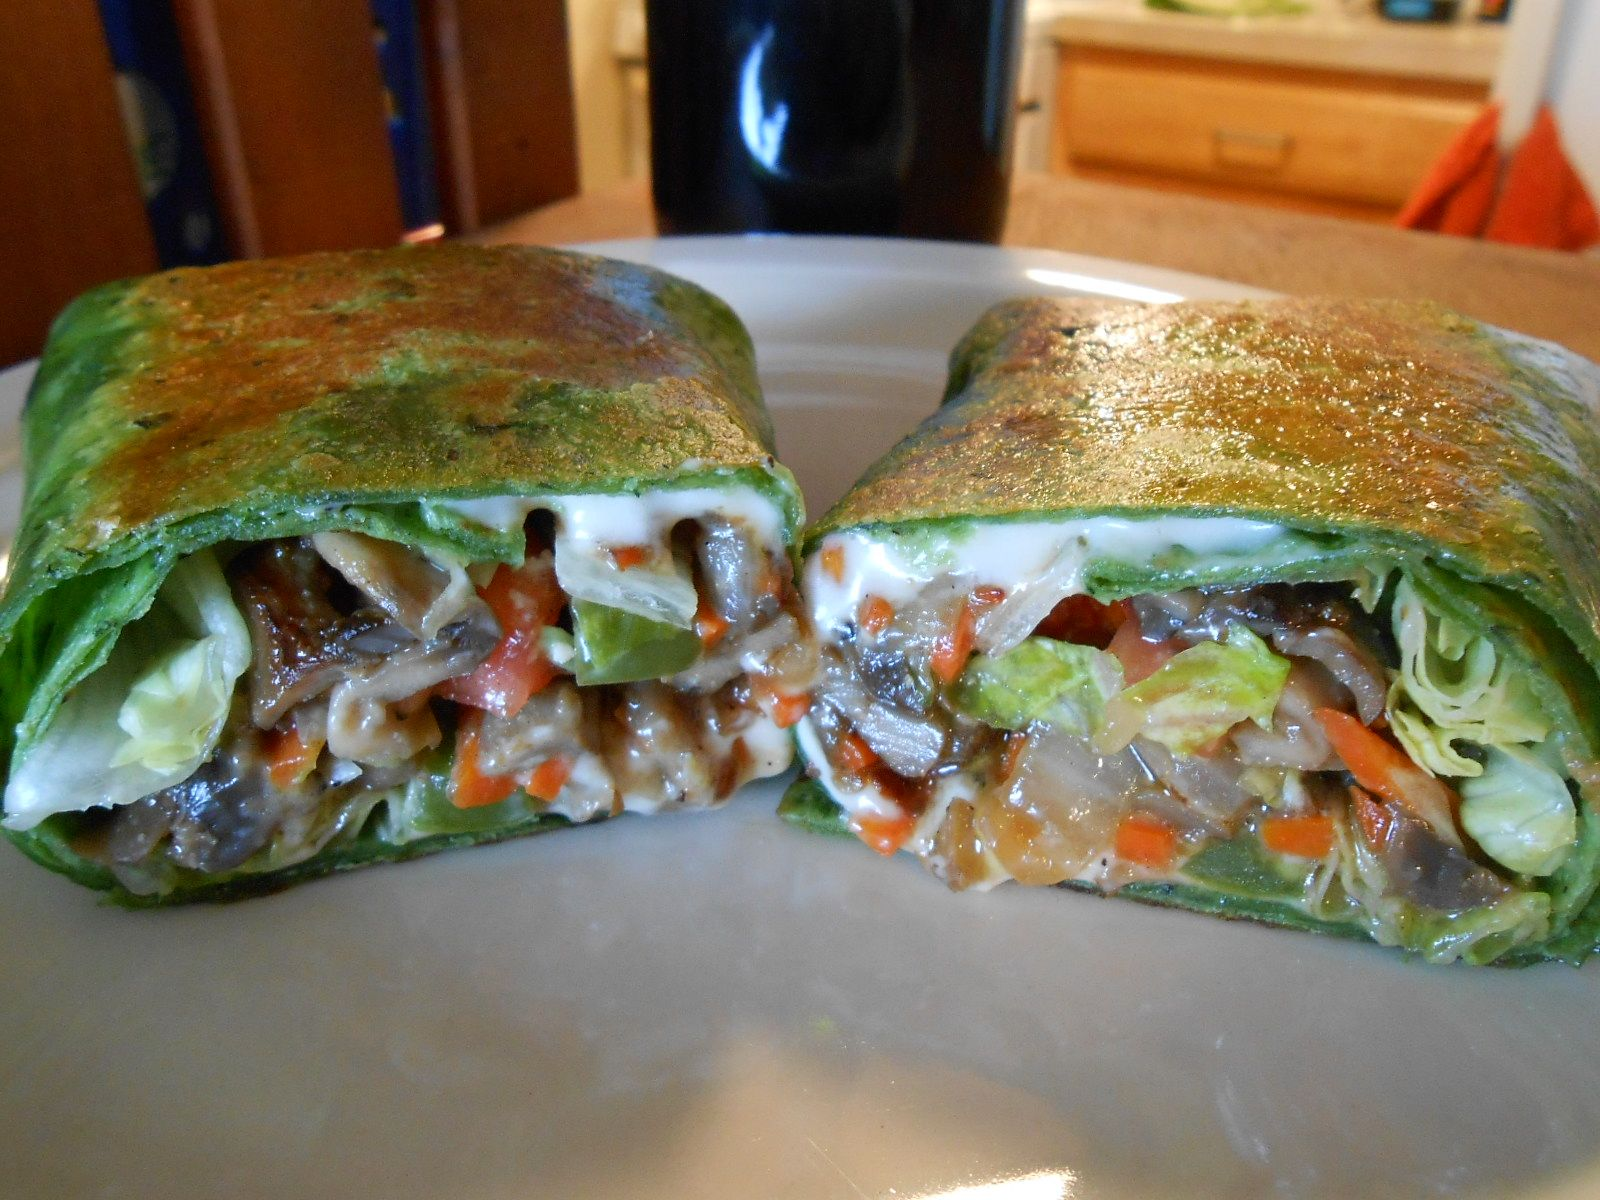 VEGGIE FAJITA WRAPS  Caramelized onion, mushrooms, peppers and carrot matchsticks wrapped in a spinach flour tortilla with dairy-free Swiss cheese, shredded lettuce and chopped tomato!  Makes 4 big ones